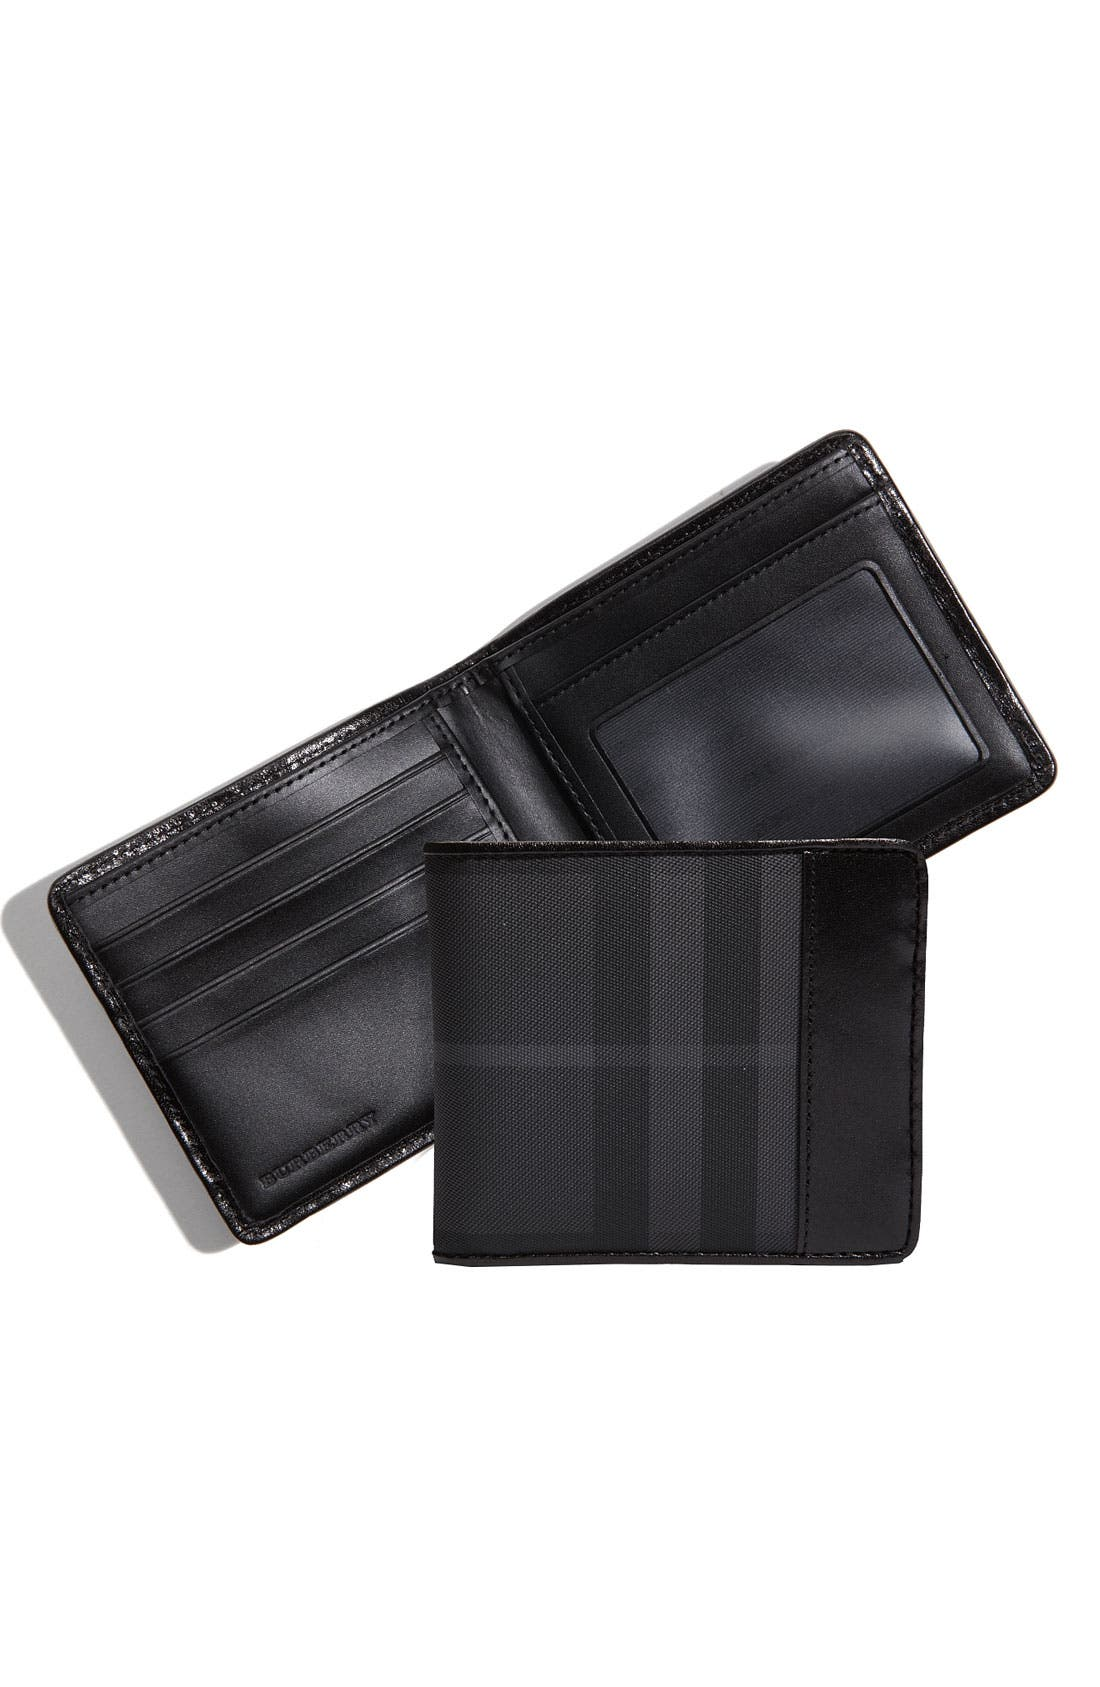 Alternate Image 4  - Burberry Check Print Billfold Wallet